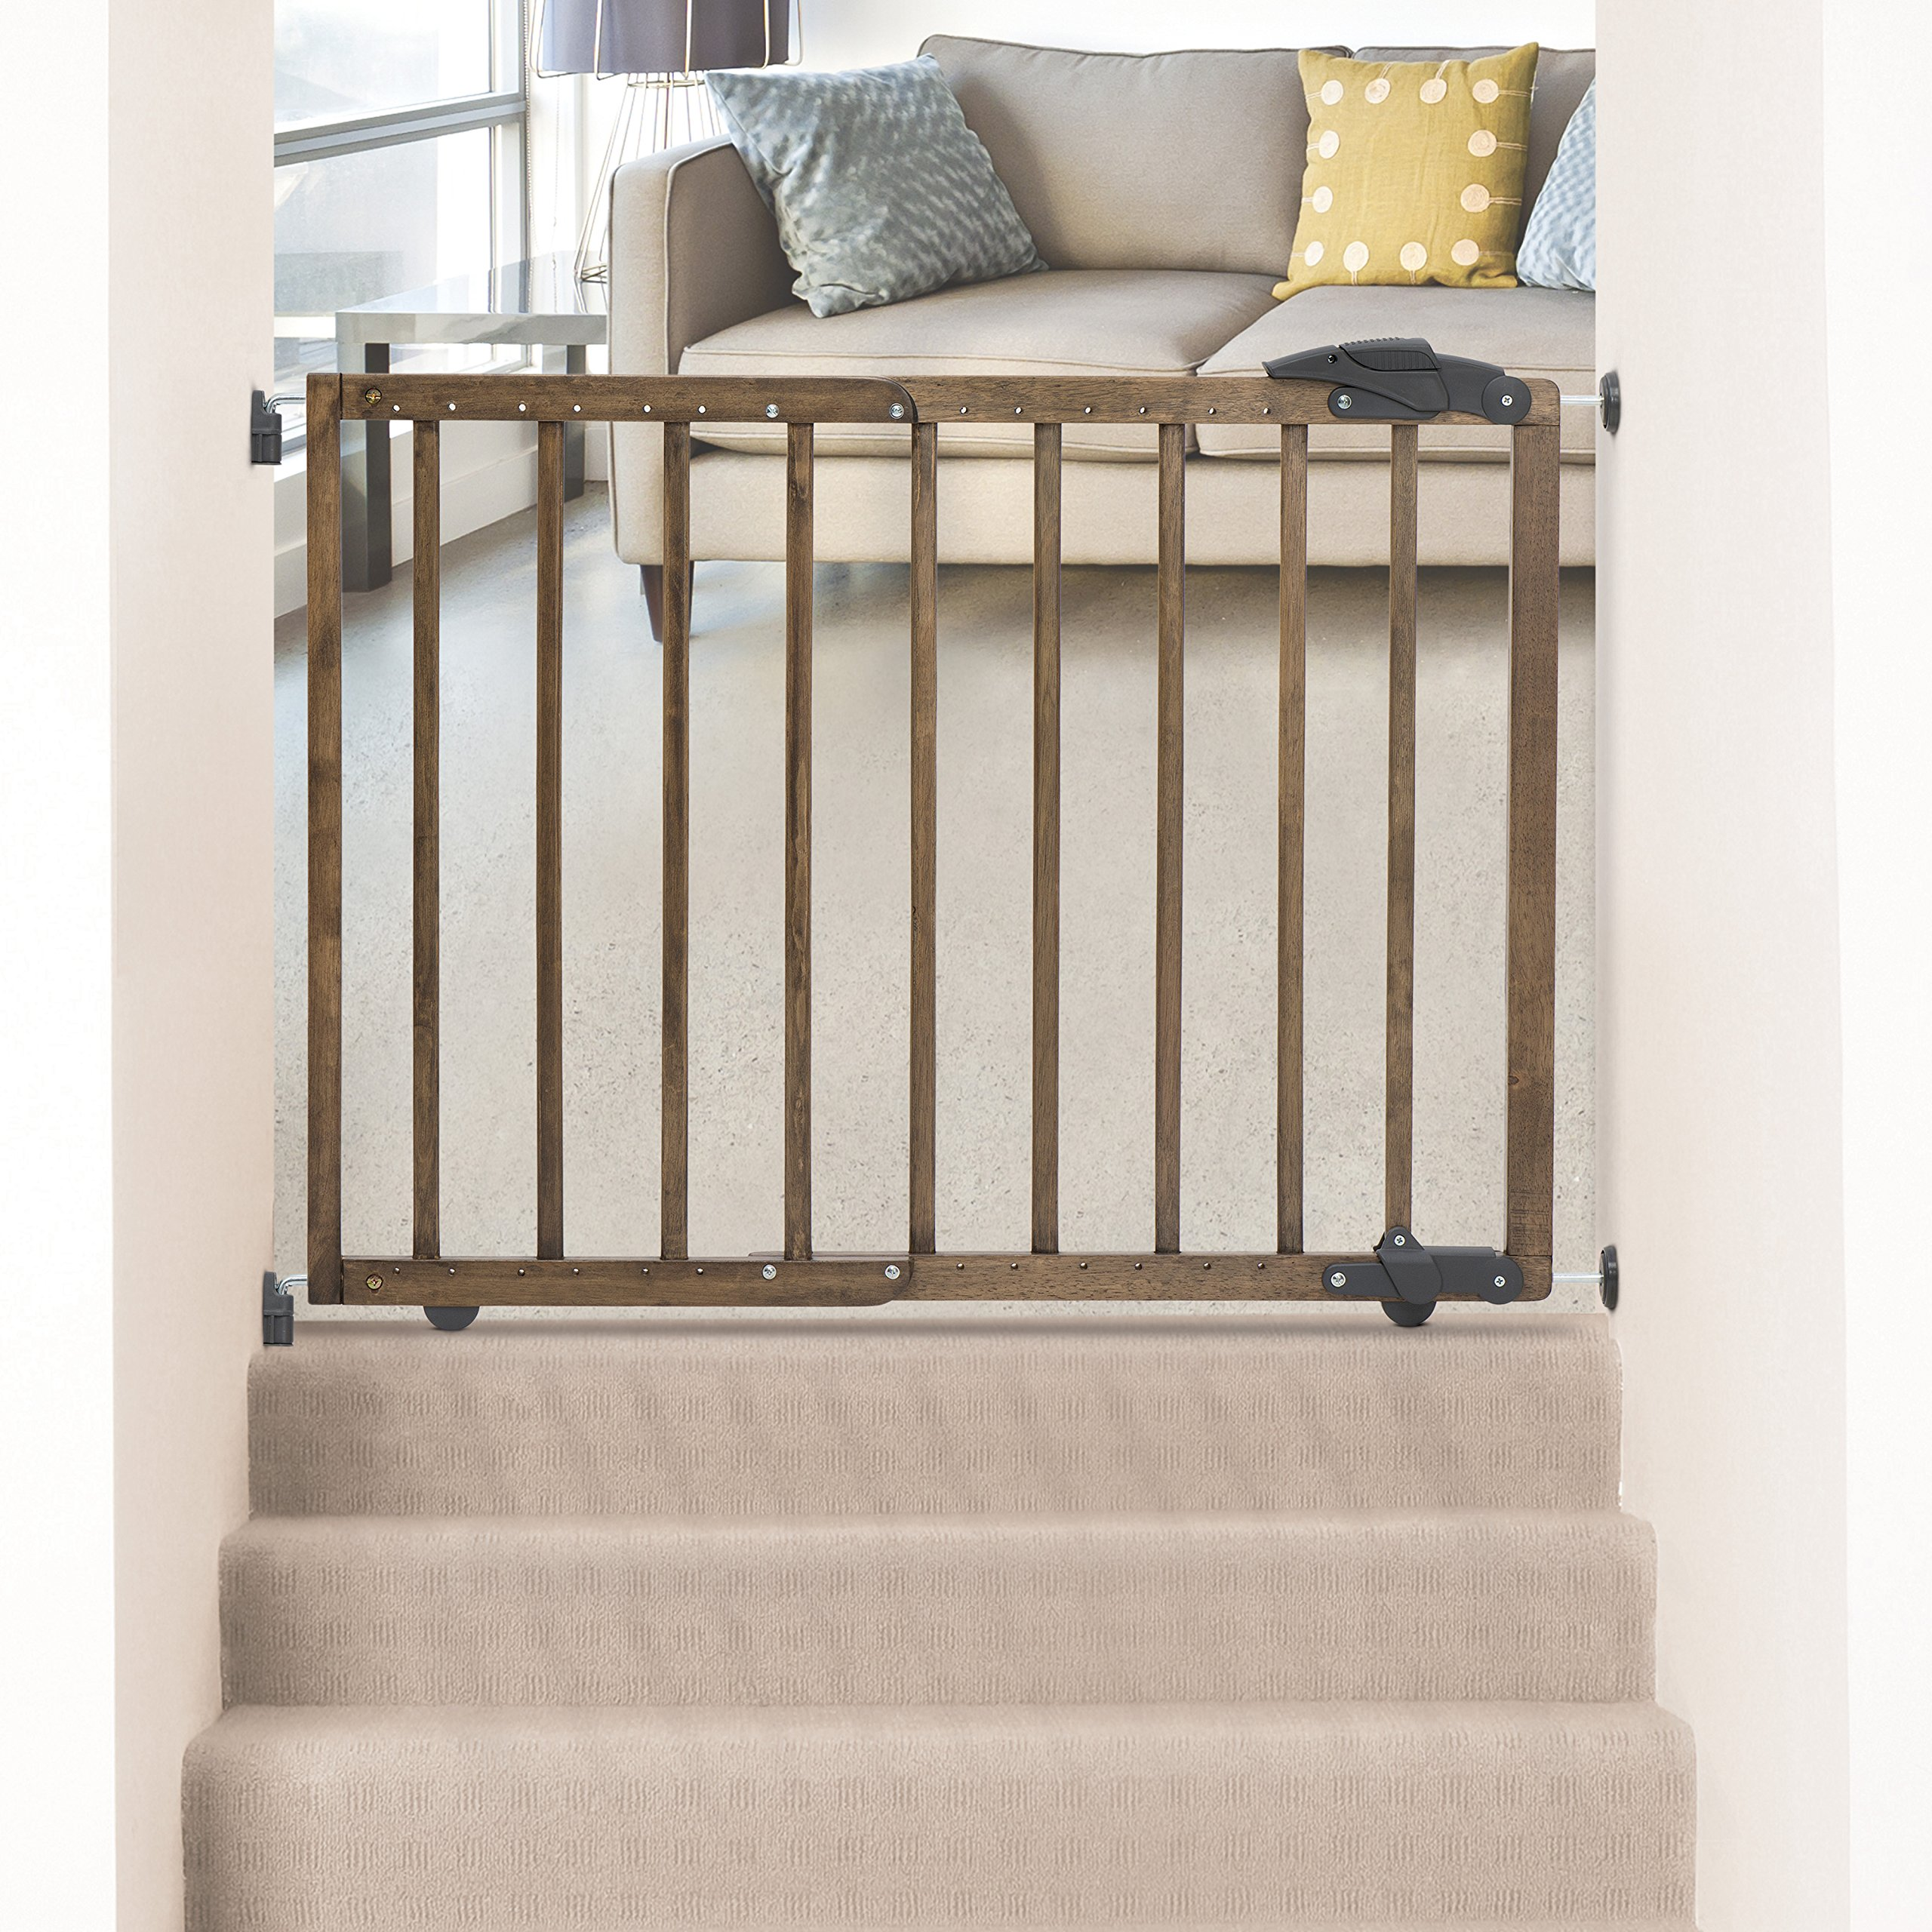 Dreambaby Nottingham 2 in 1 Gro-Gate by Dreambaby (Image #3)